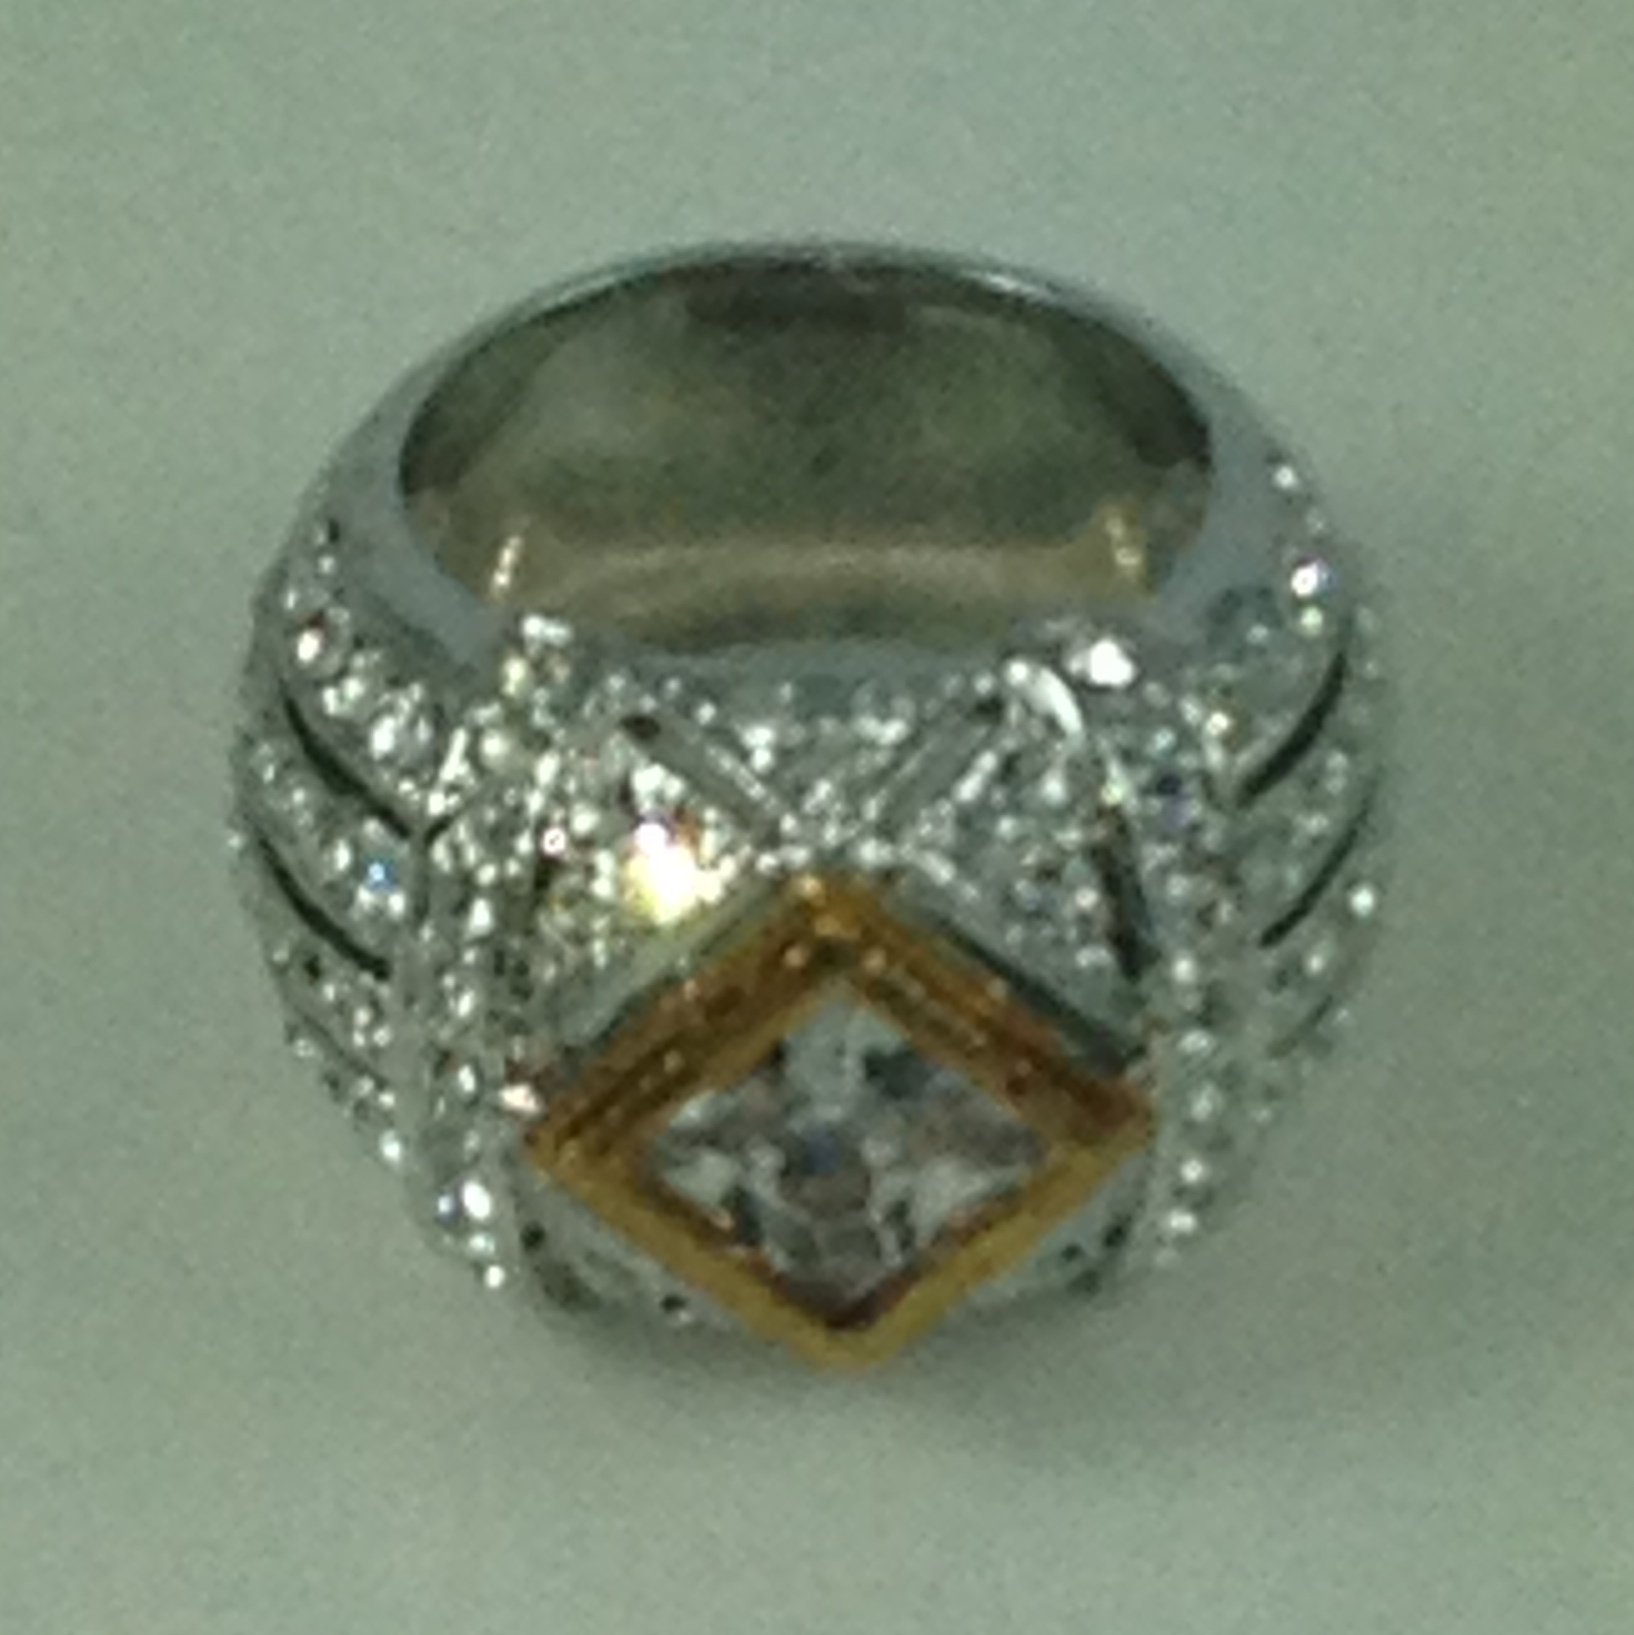 DR015 - CUBIC ZIRCONIA & AUSTRIAN CRYSTAL STUNNING TWO TONE RING